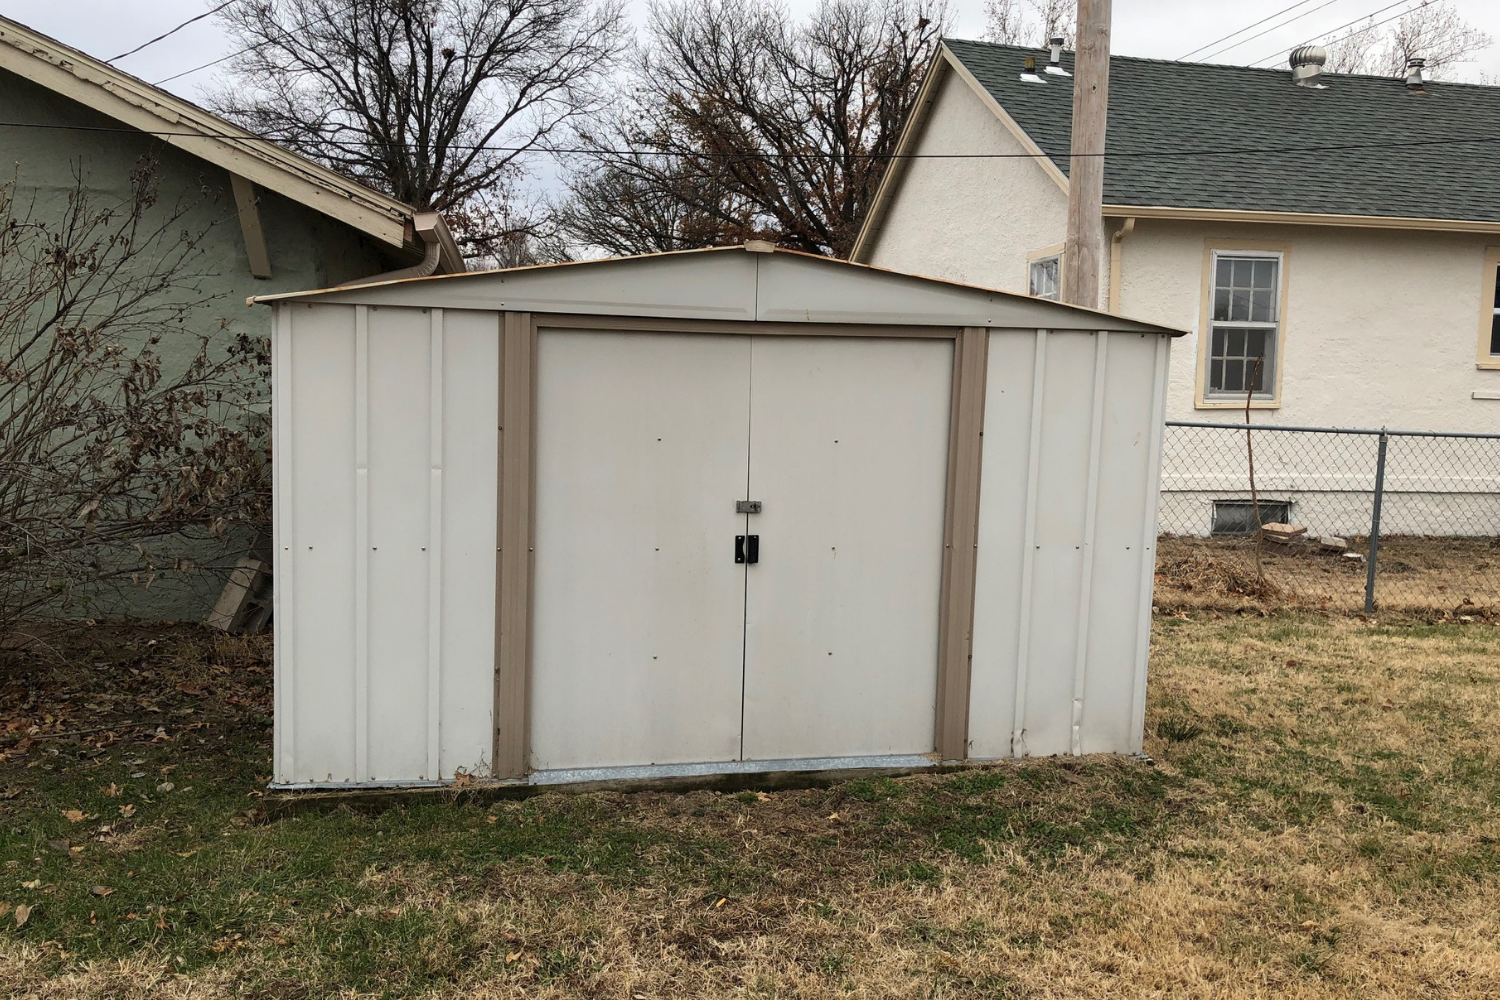 Car Garage For Rent >> Fixer Upper W 4 Car Garage Available Rent 2 Own This 2 Bed 1 Ba